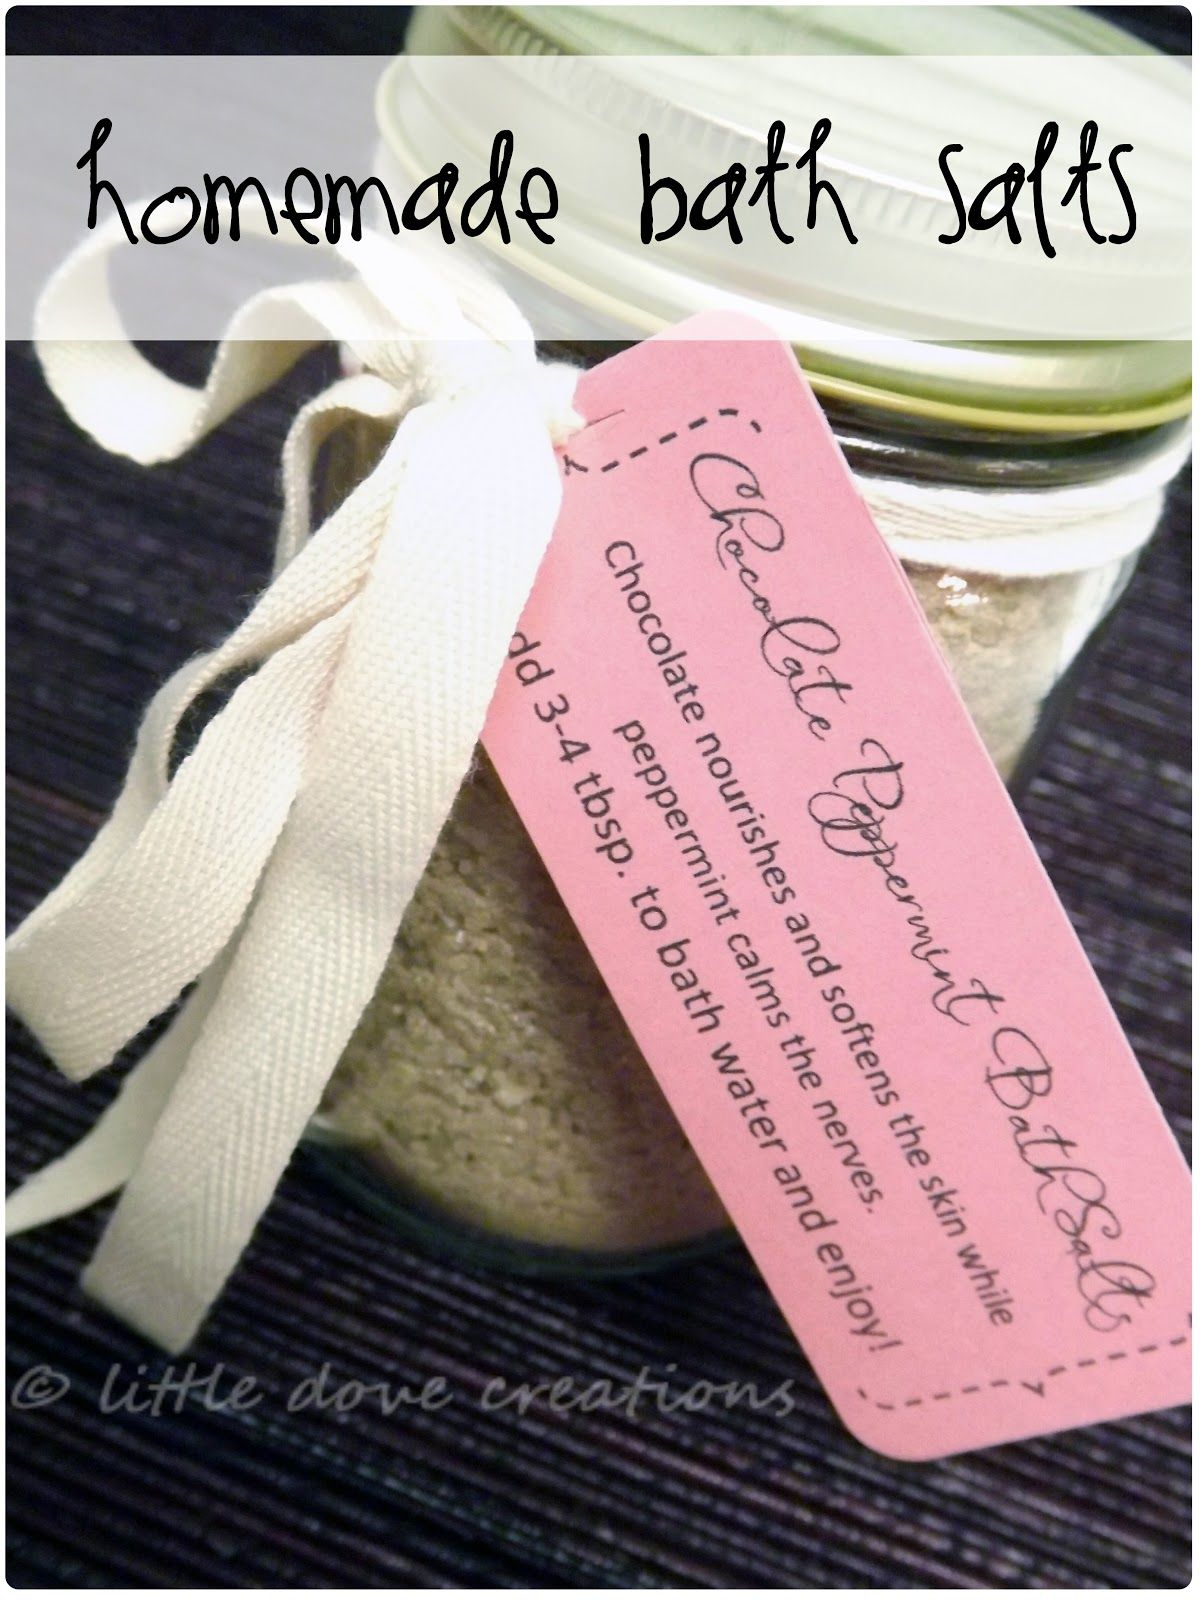 Little Dove Creations: chocolate peppermint bath salts | Young ...